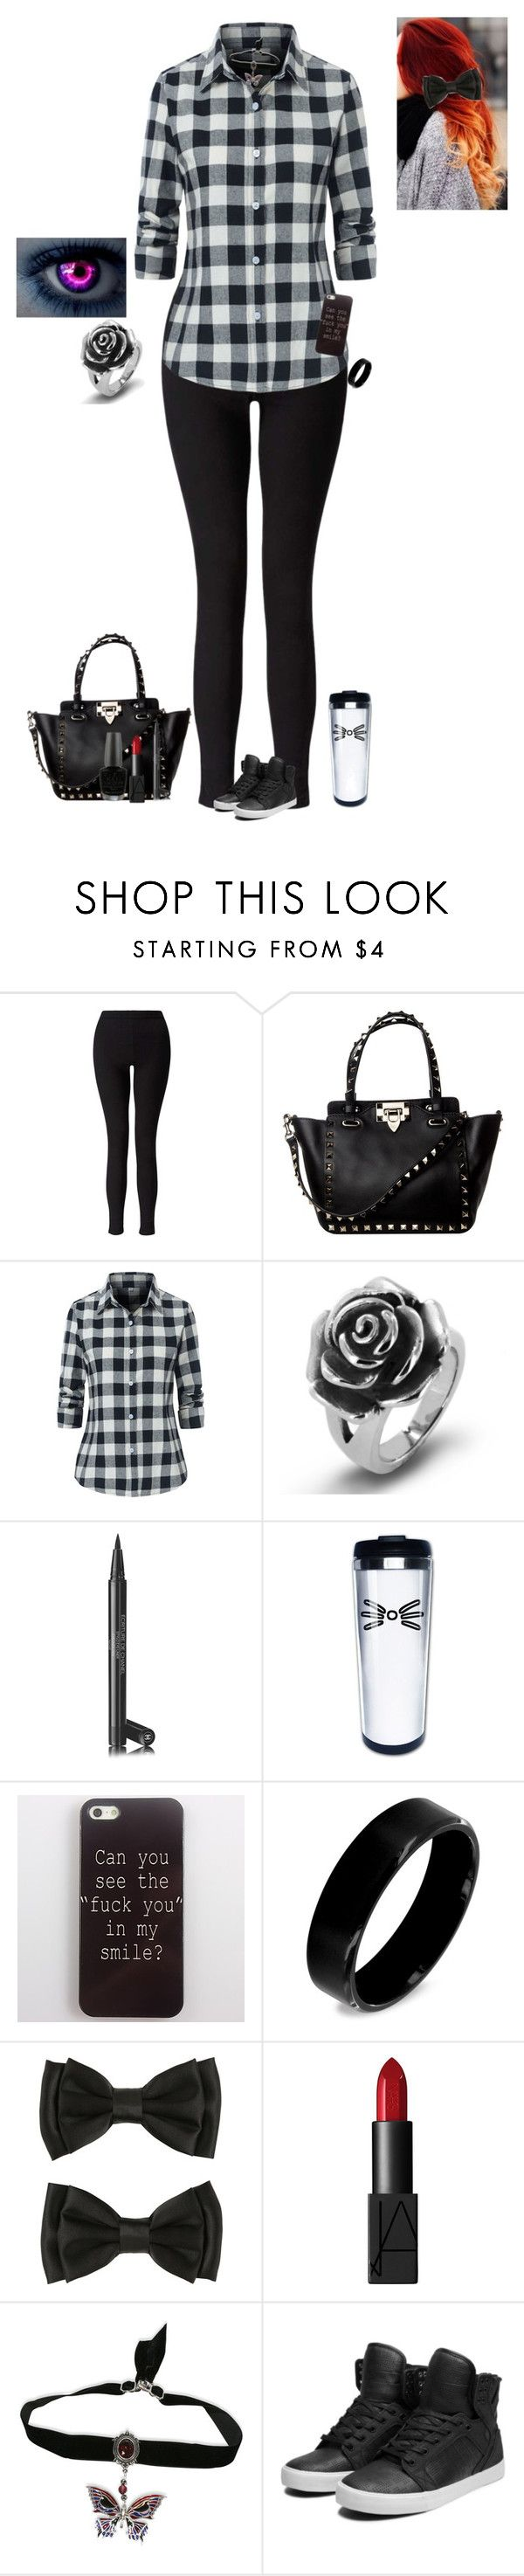 """""""Bad influence"""" by the-sickest666 ❤ liked on Polyvore featuring Miss Selfridge, West Coast Jewelry, Chanel, NARS Cosmetics, Supra and OPI"""